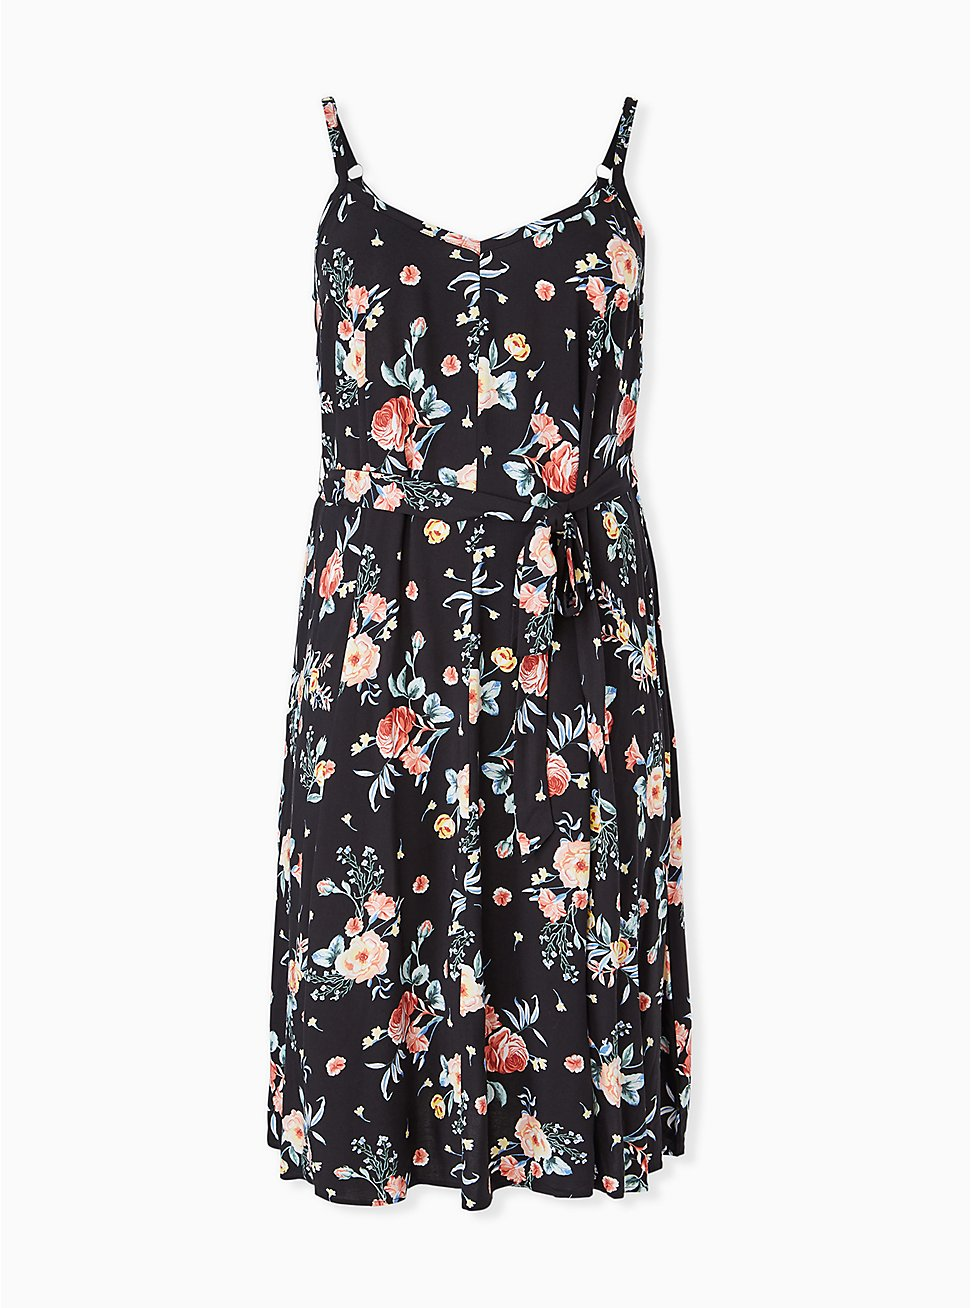 Black Floral Challis Self Tie Midi Dress, FLORALS-BLACK, hi-res